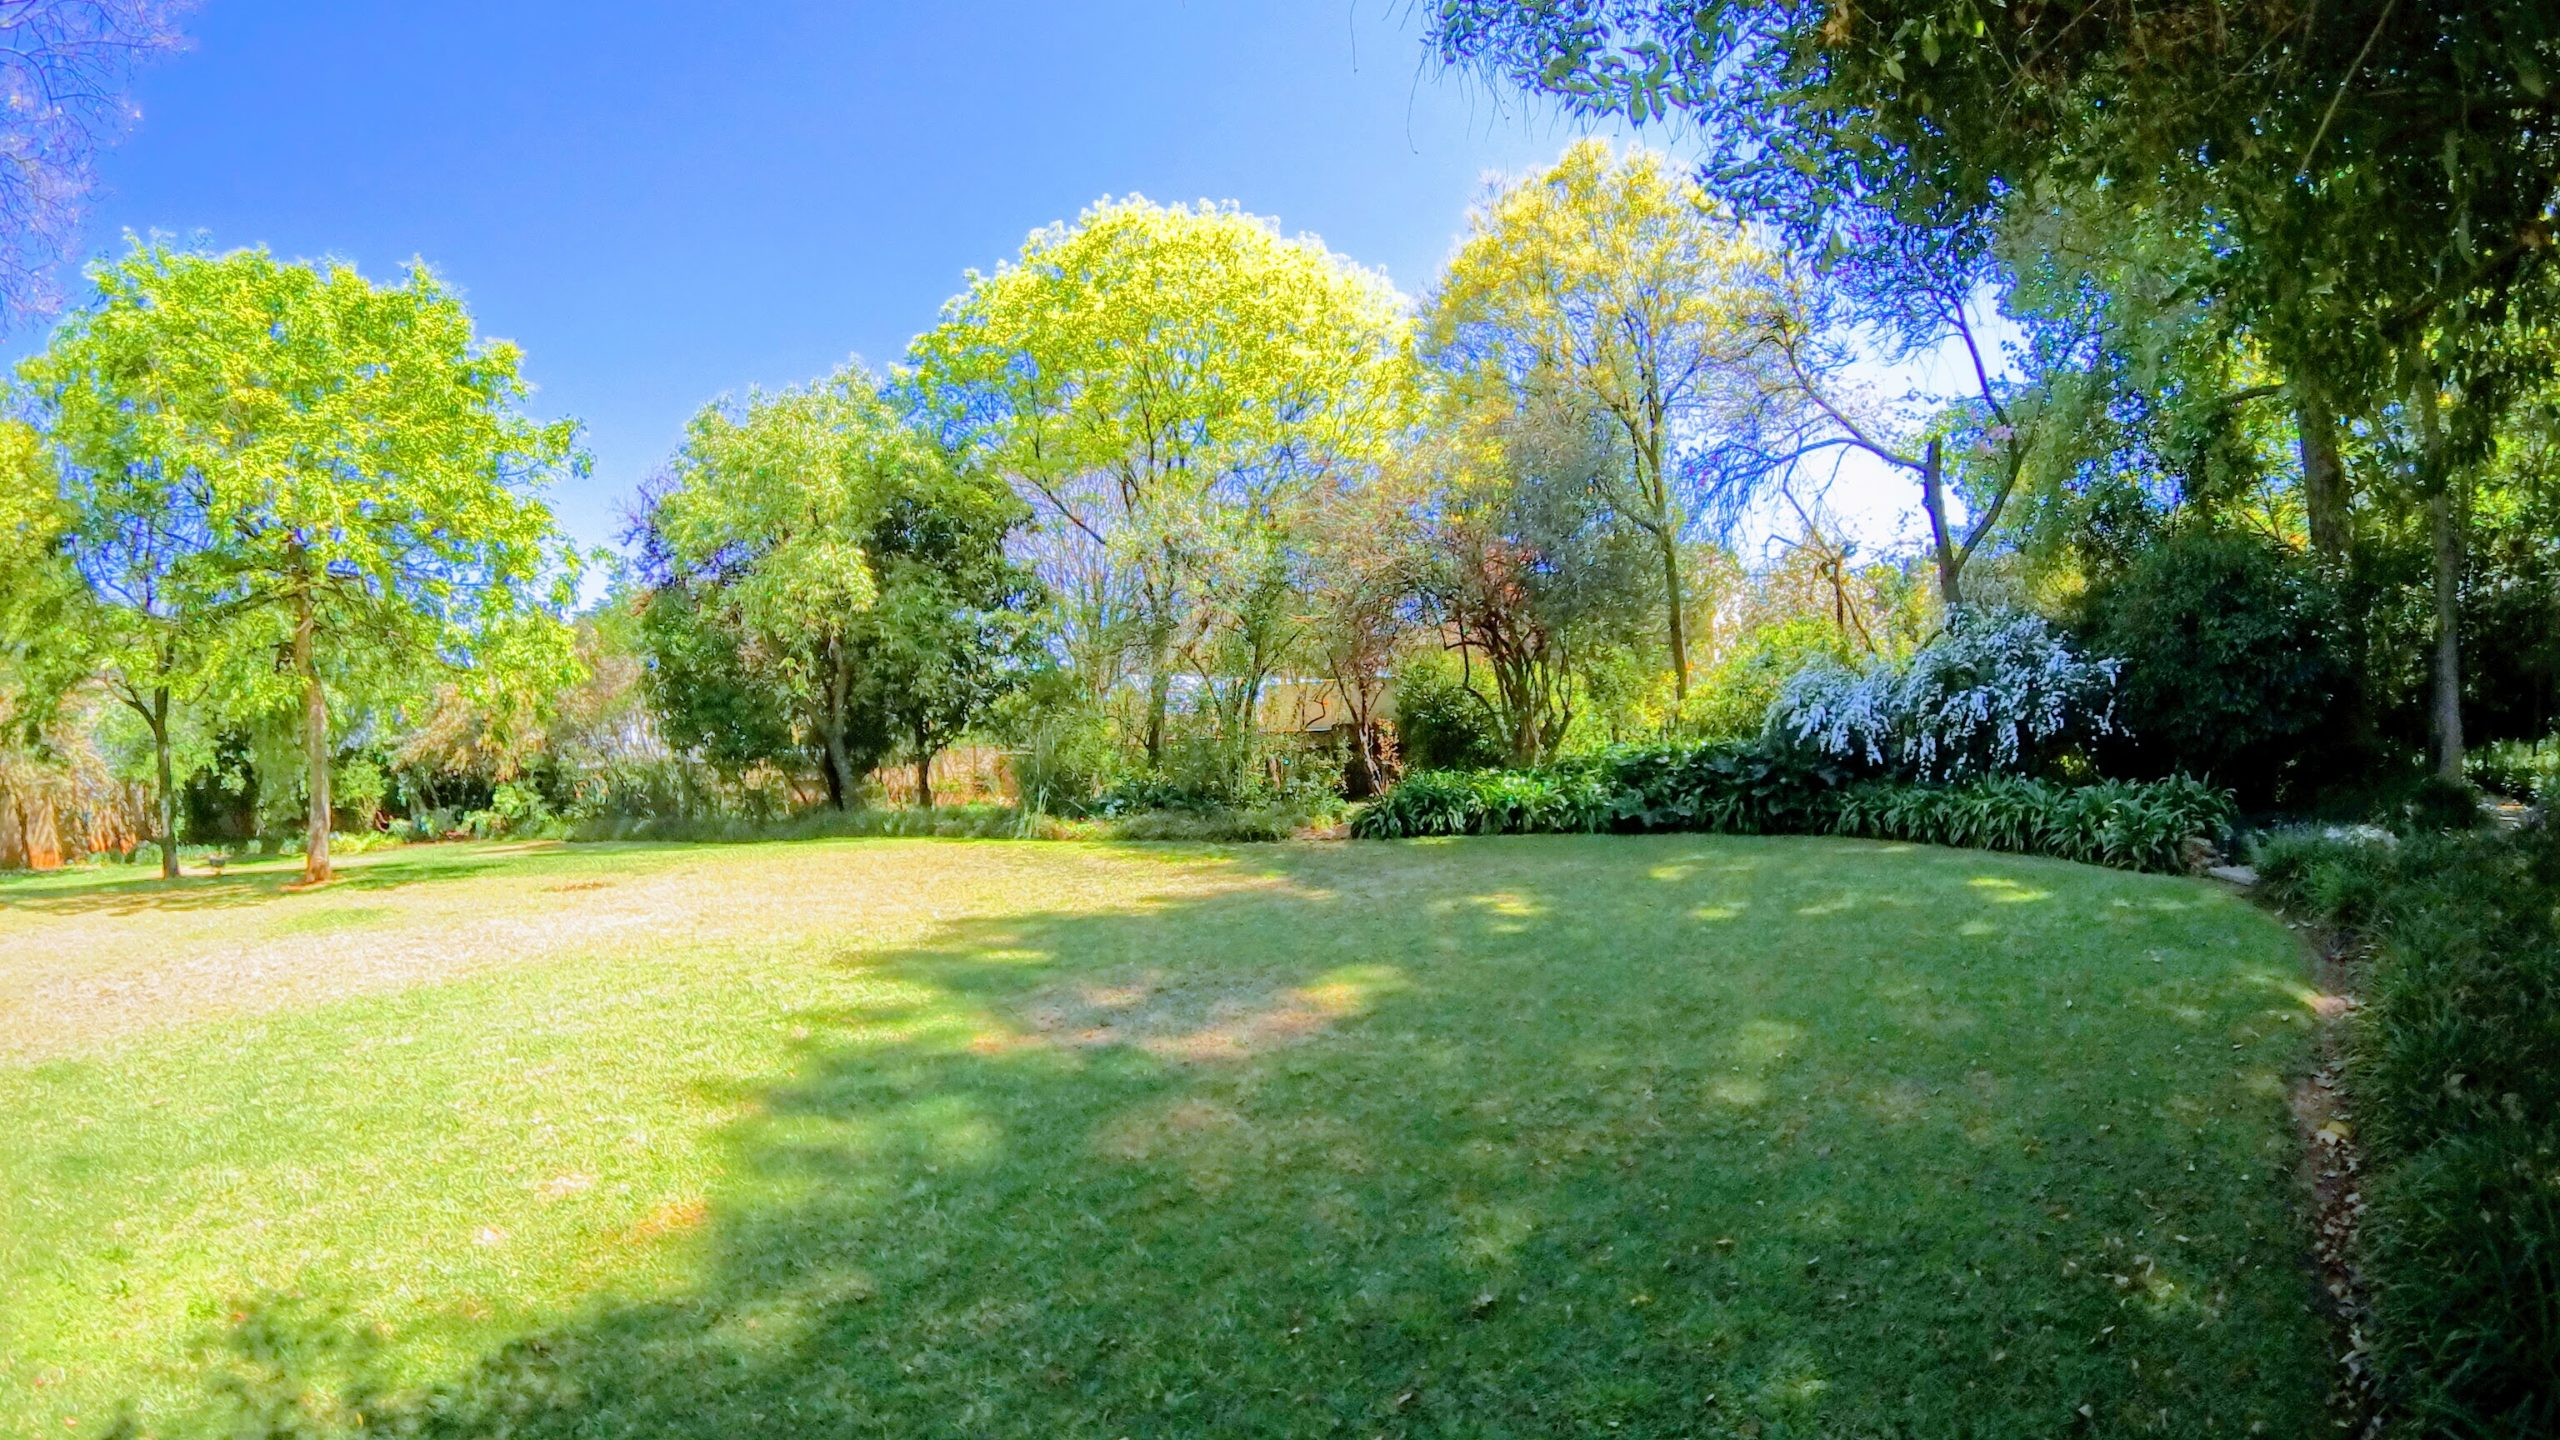 airbnb 360 virtual tour will bring the best out in your garden and property. This image was taken by 360 Degree Pro on Saxonwold, Johannesburg, South Africa